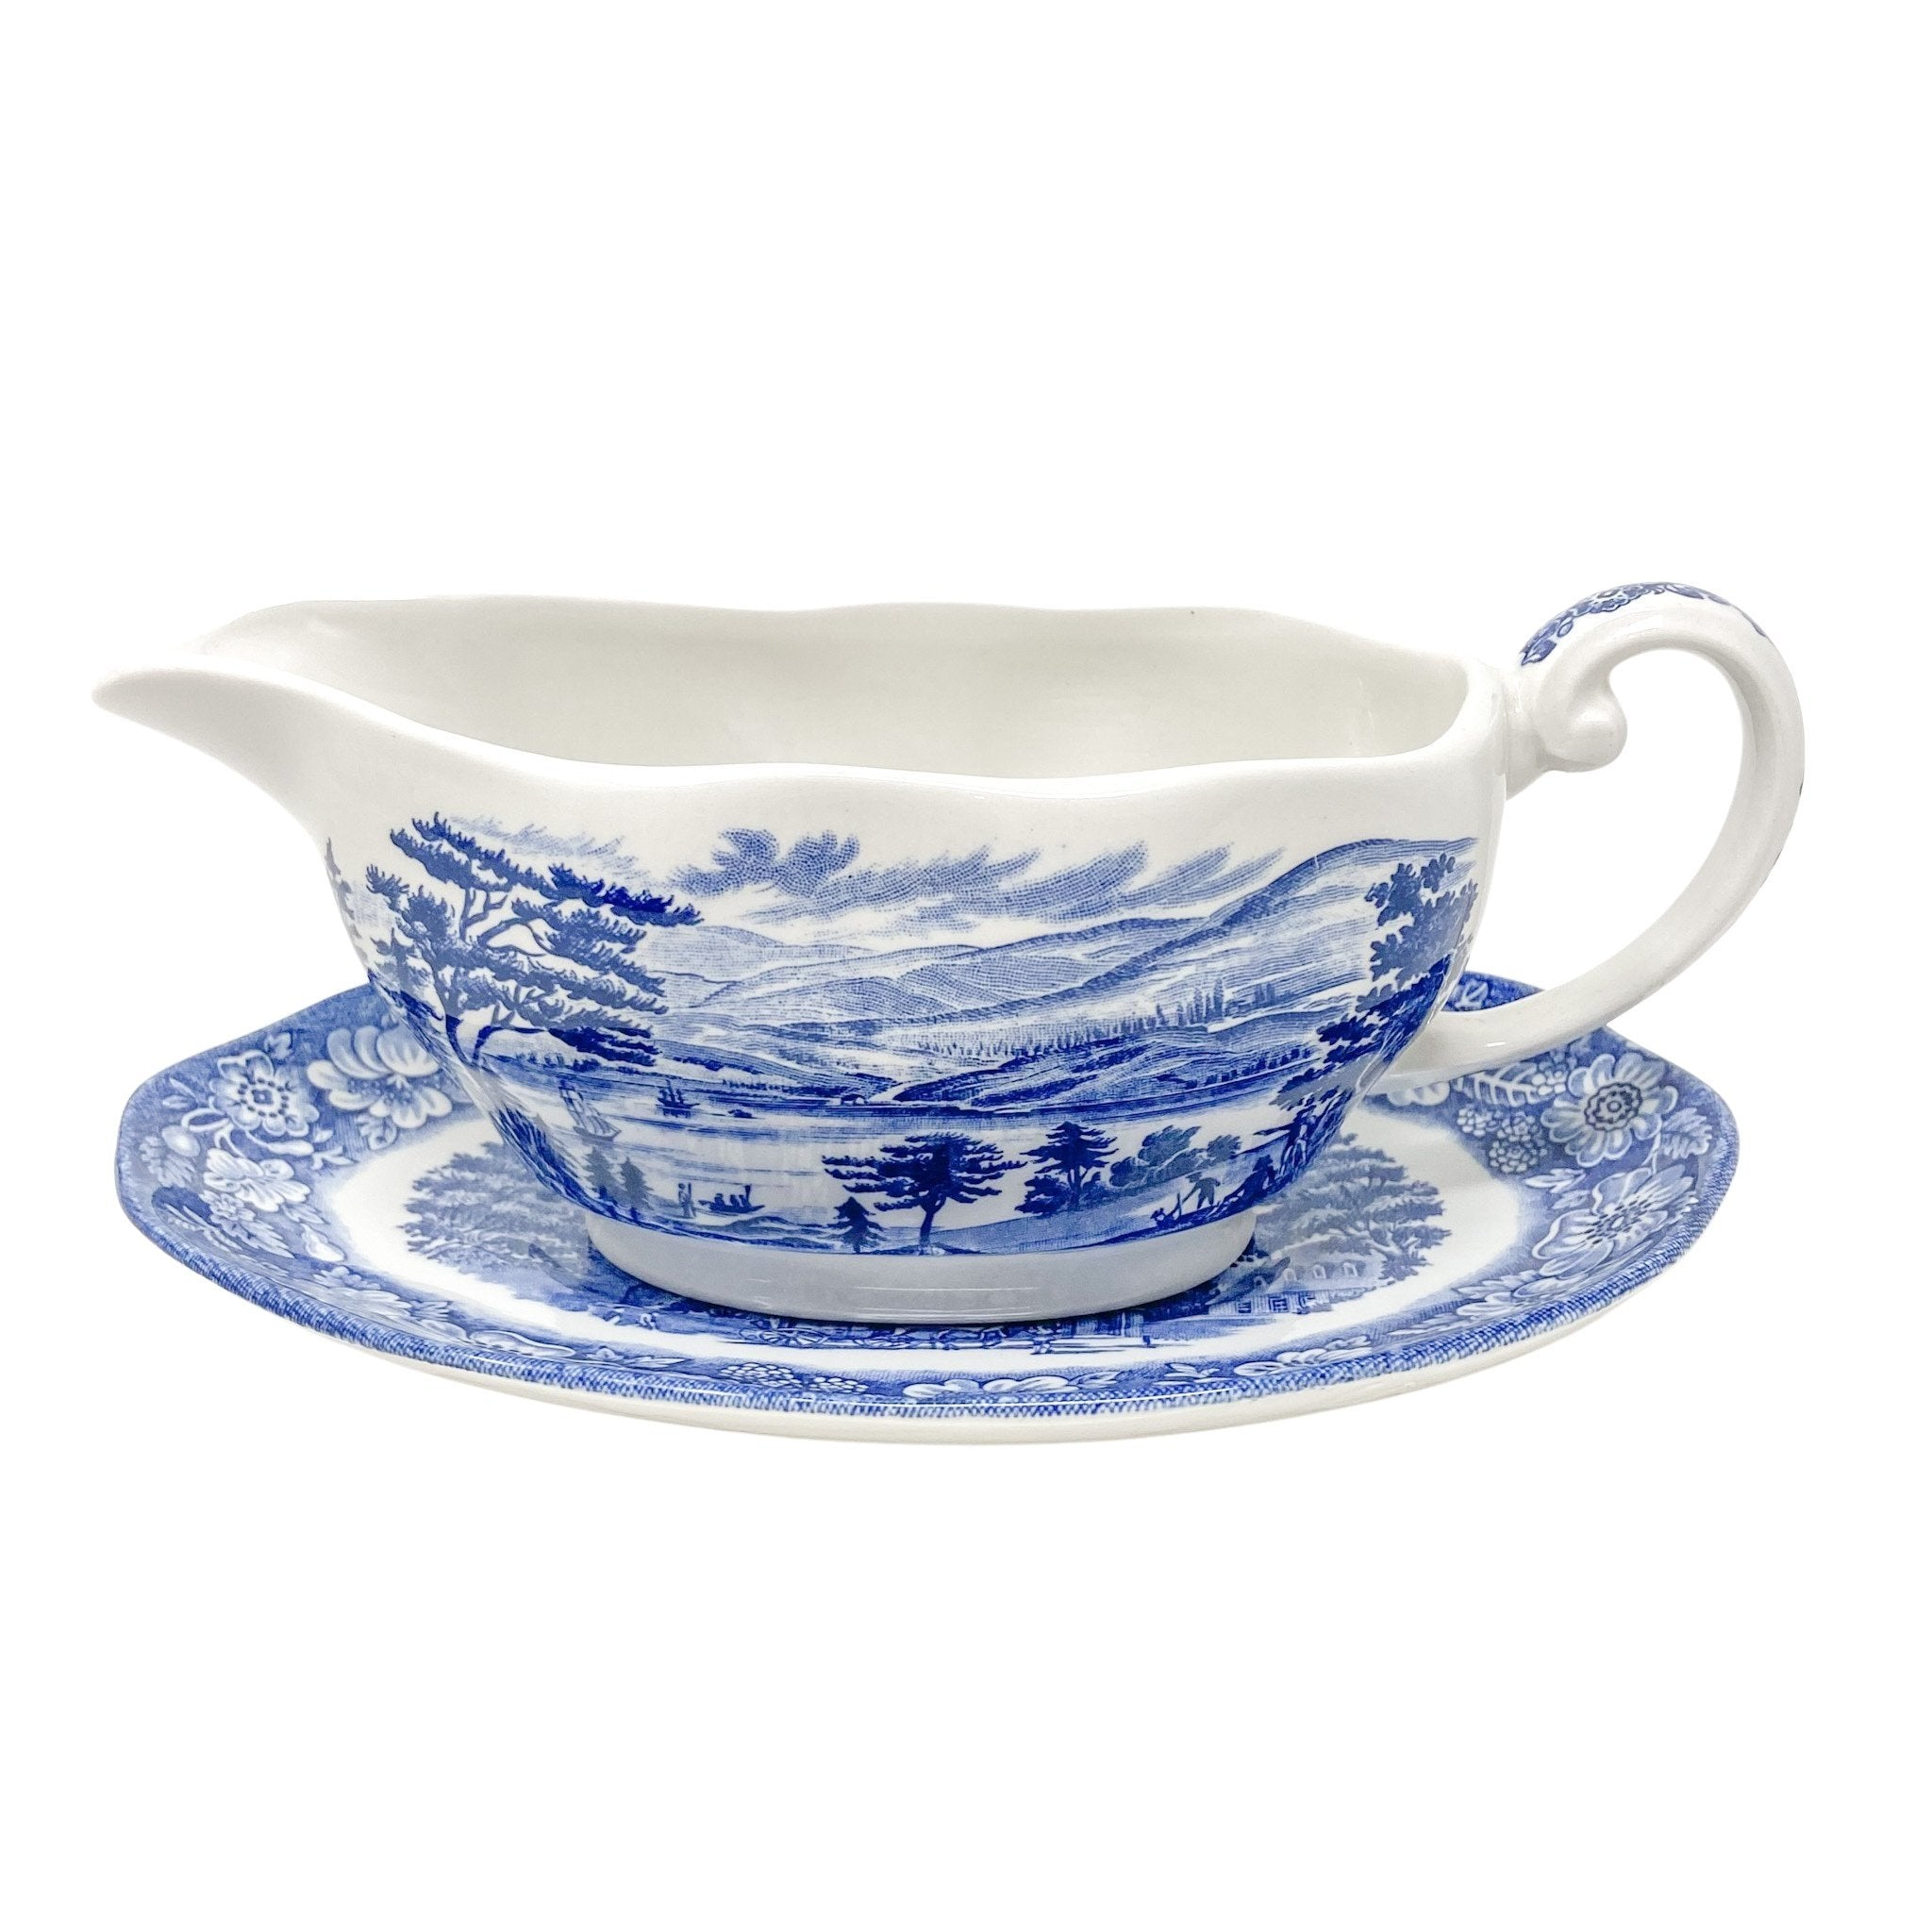 Vintage Liberty Blue Lafayette Landing Gravy Boat | The Brooklyn Teacup